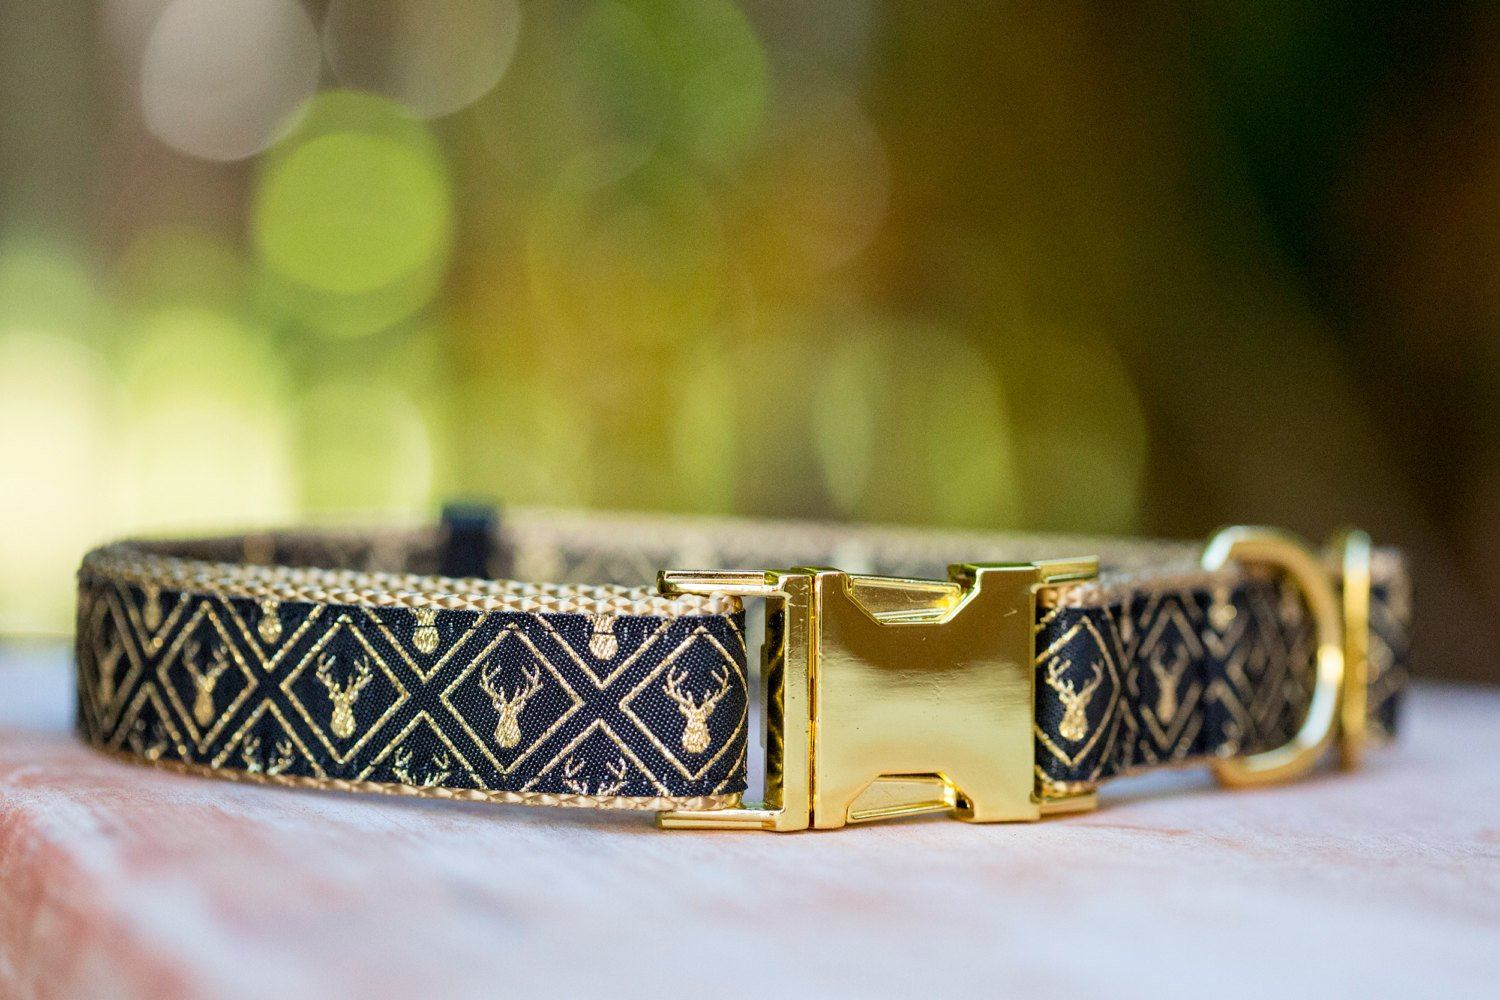 Golden Stag Dog Collar, gold dog collar, dog collar with stunning gold print and gold trim